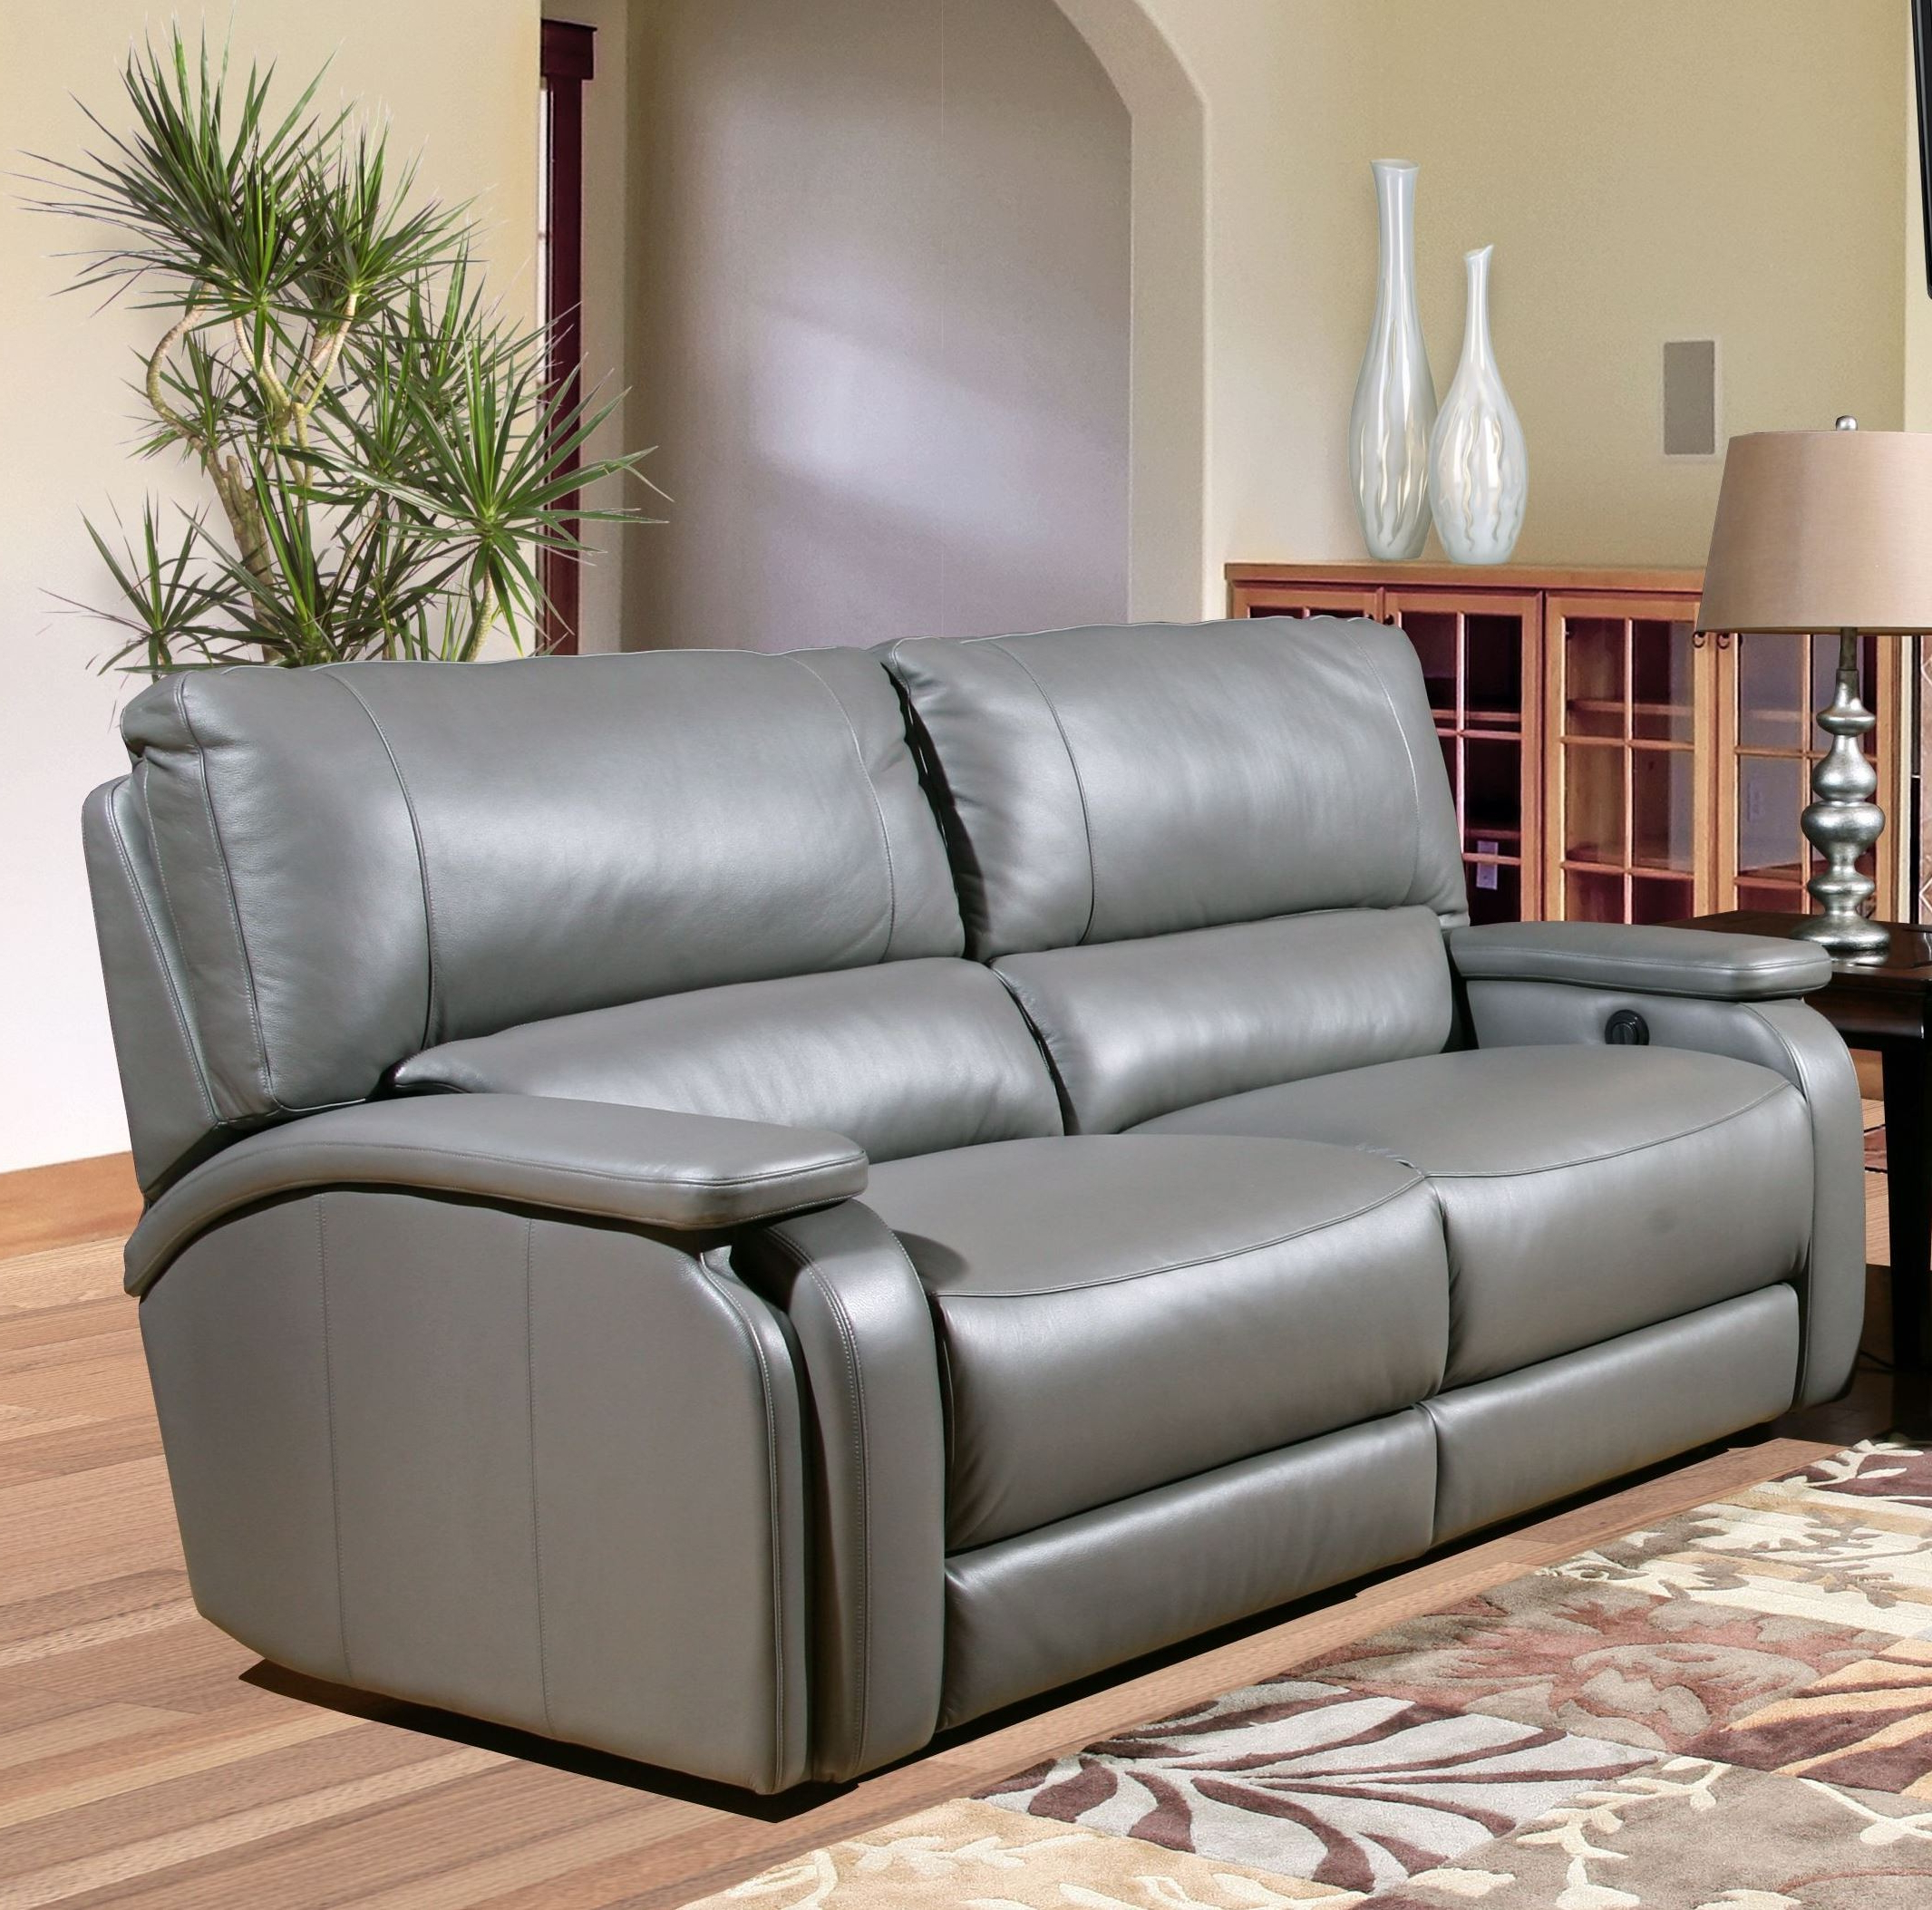 Popular Grisham Heron Dual Power Reclining Sofa From Parker Living Pertaining To Raven Power Reclining Sofas (View 4 of 15)